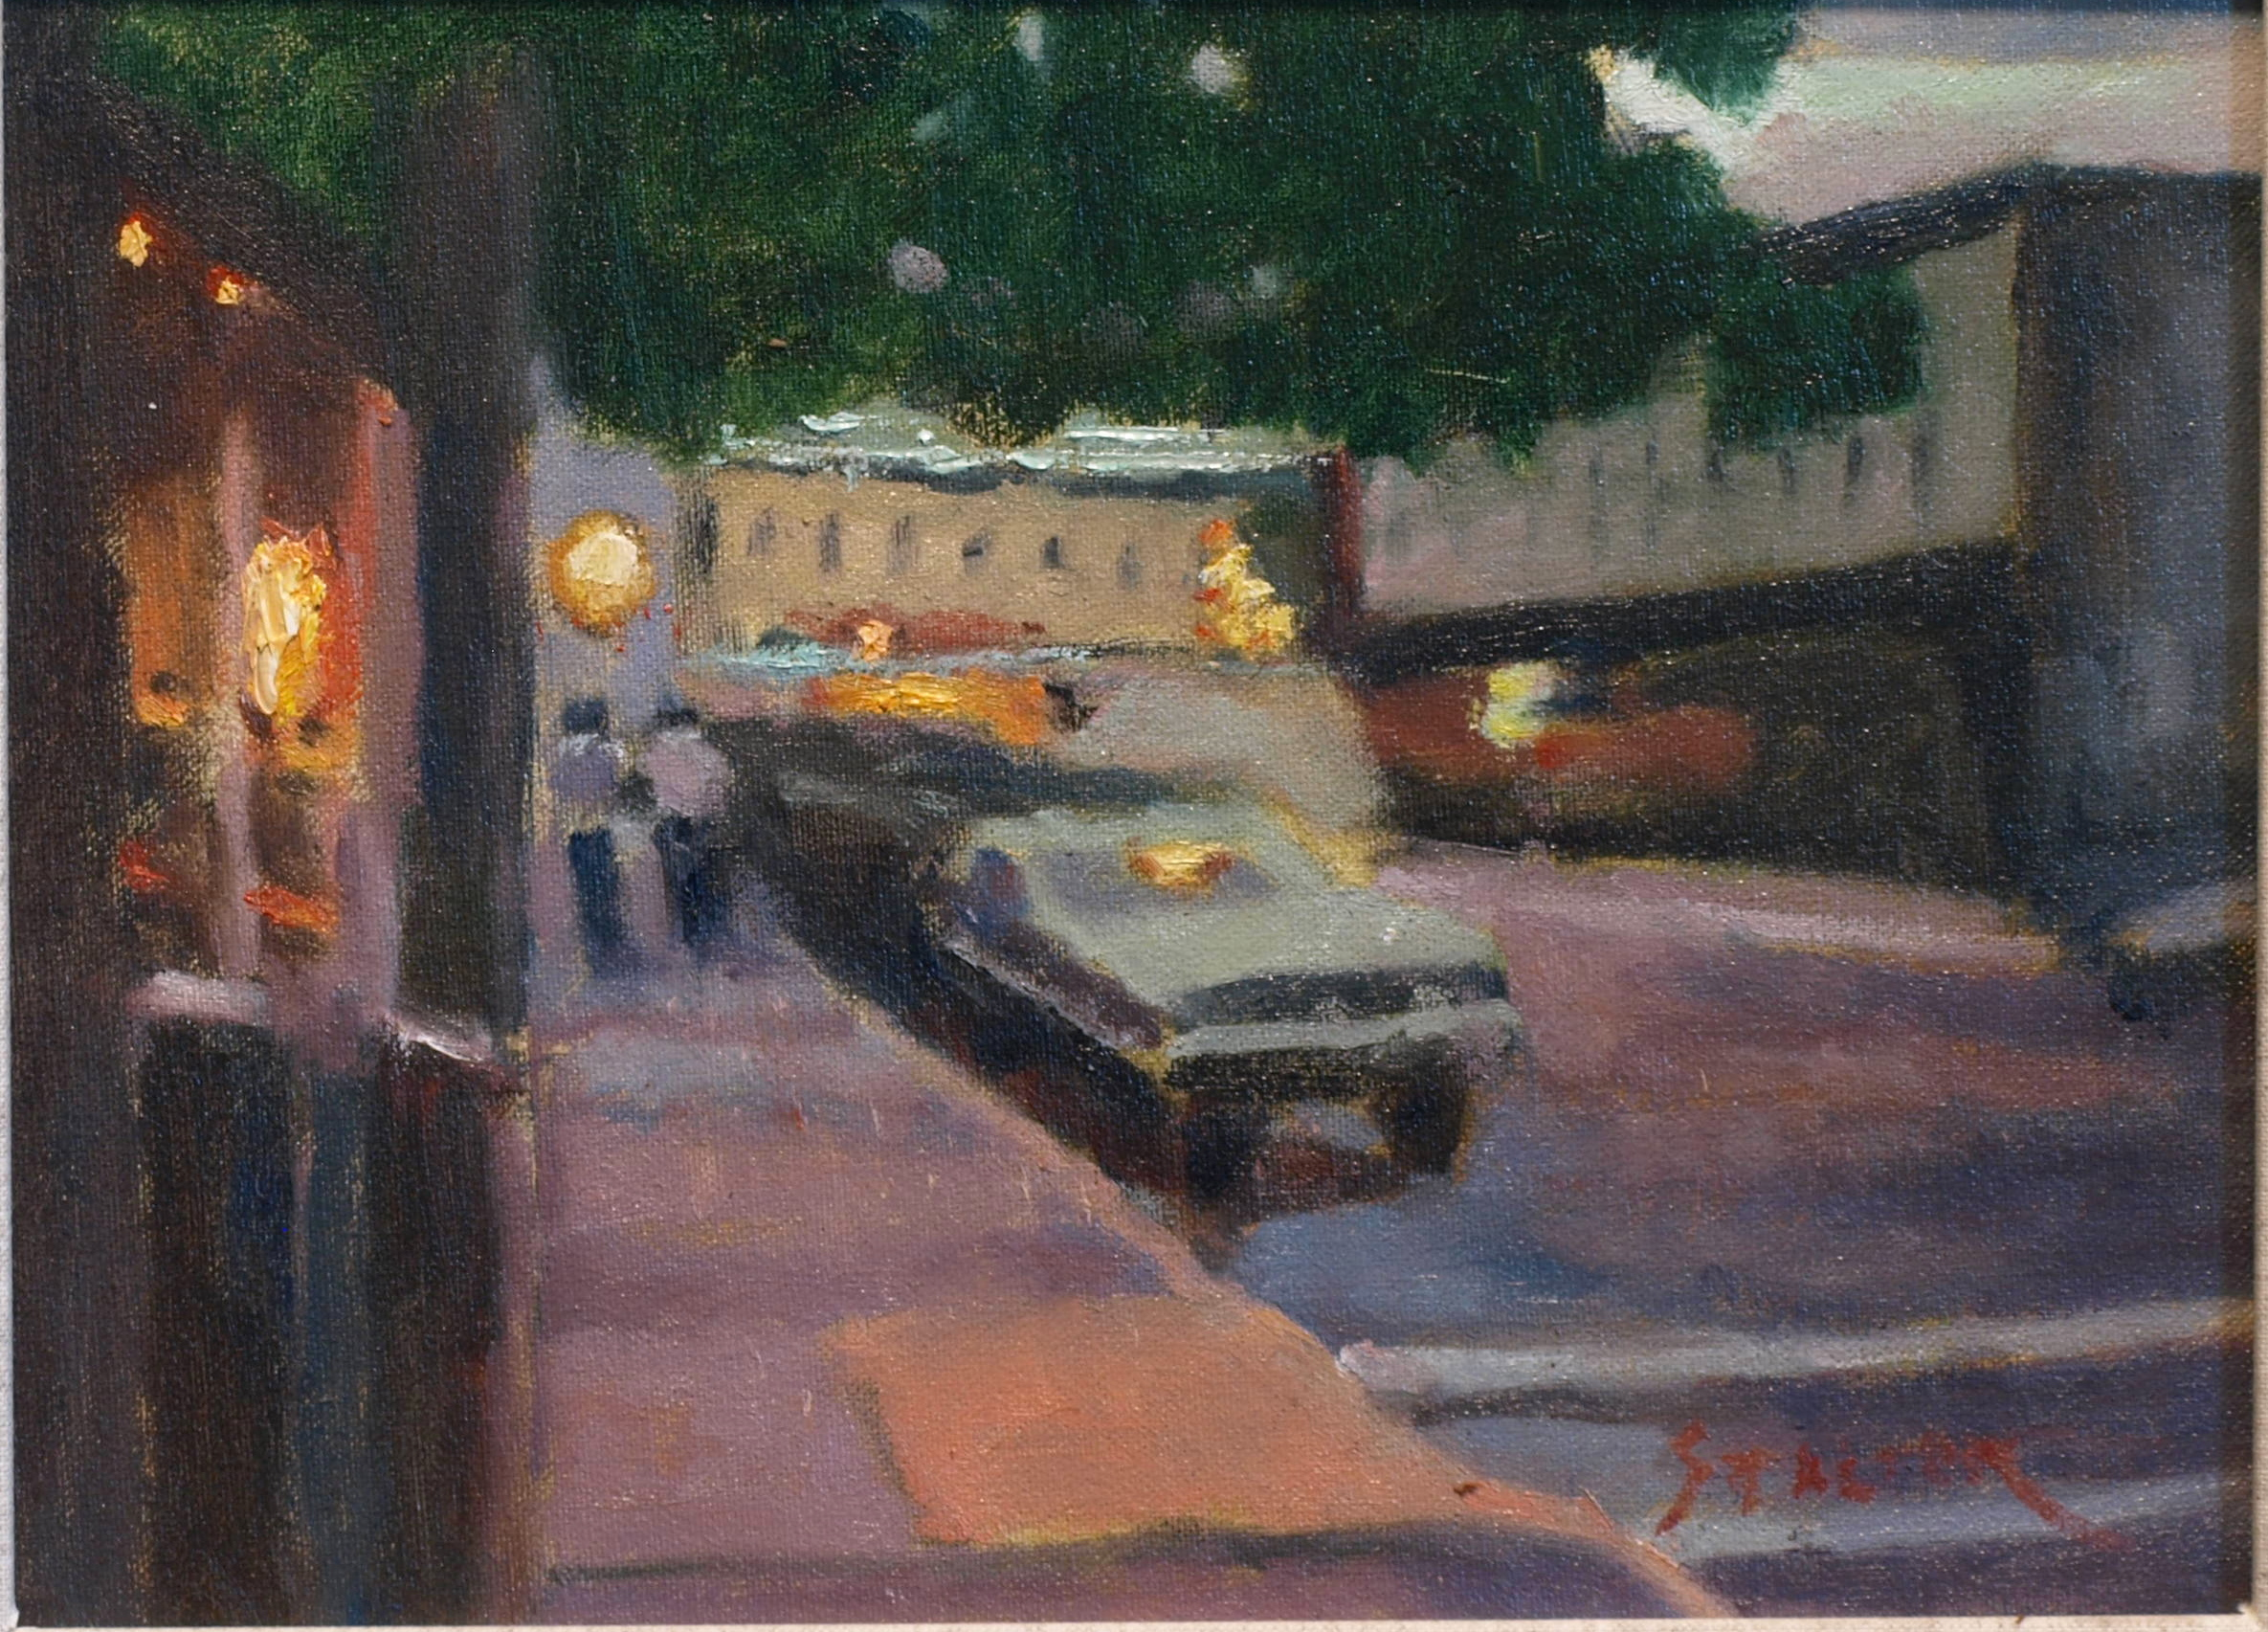 Mystic Evening, Oil on Canvas on Panel, 9 x 12 Inches, by Richard Stalter, $350